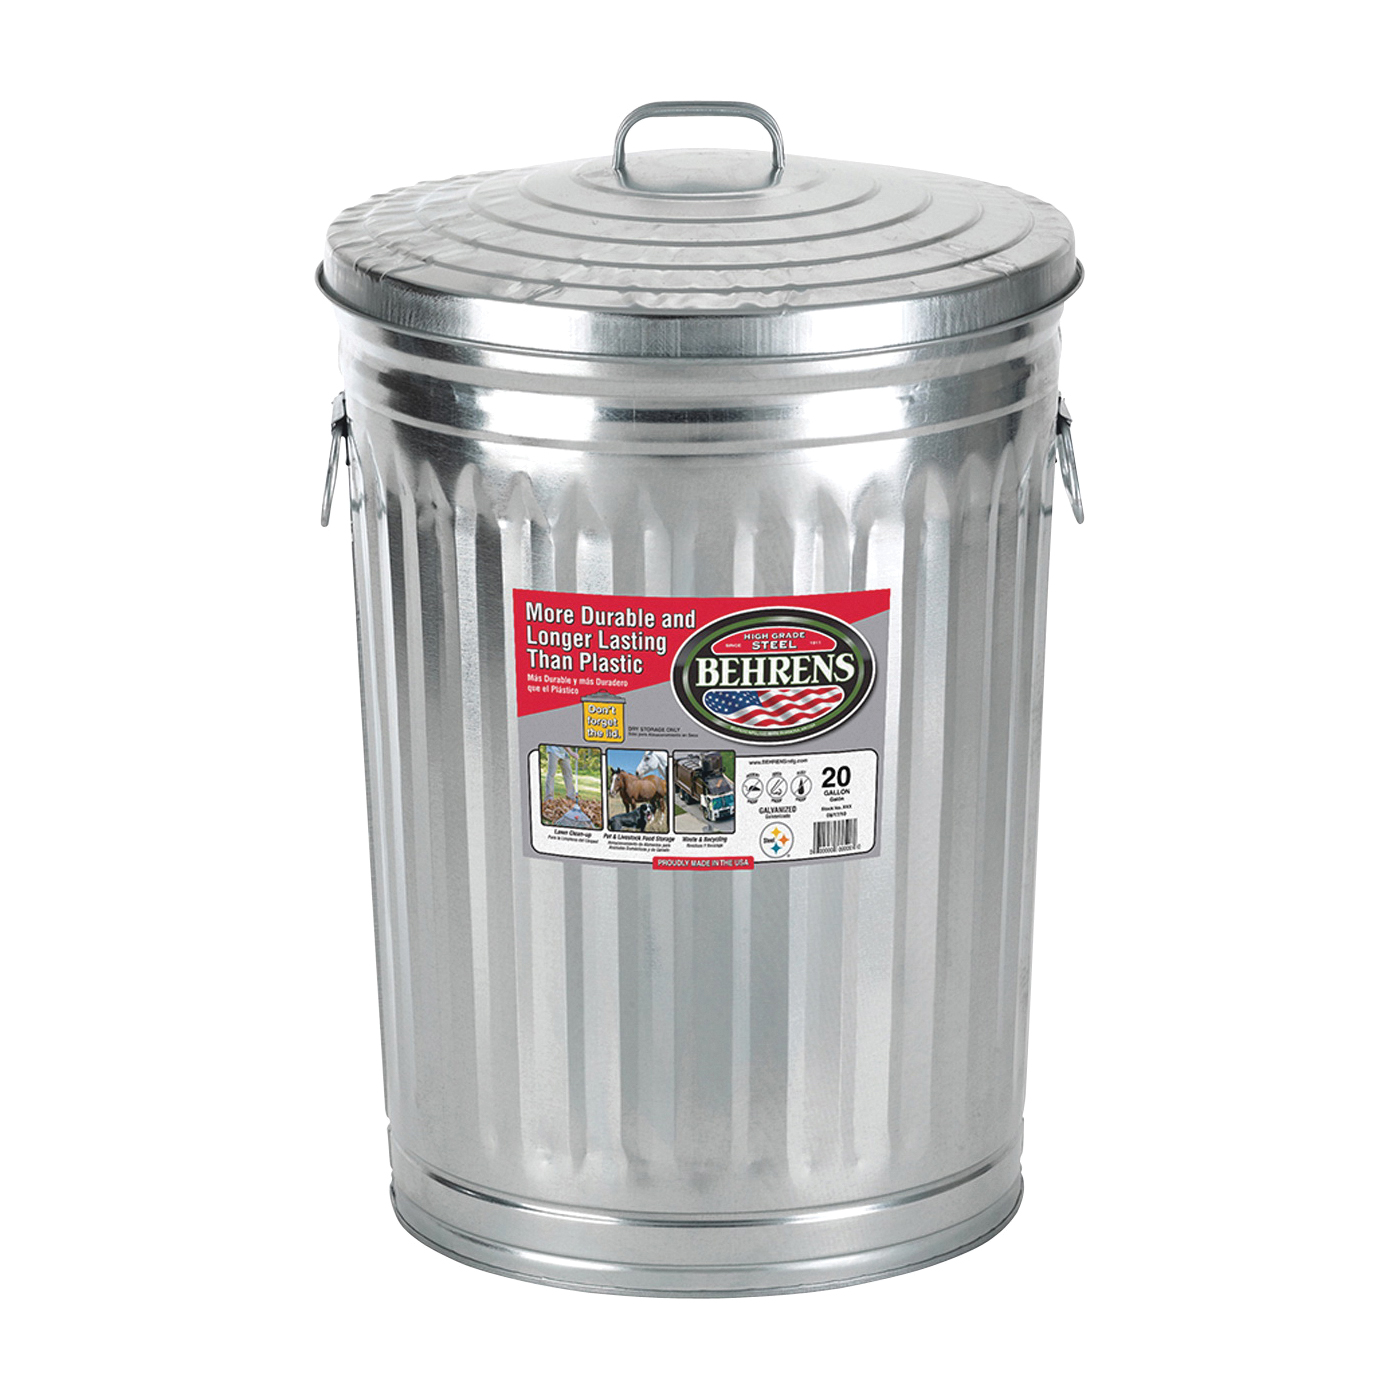 Picture of Behrens 1211 Trash Can, 20 gal Capacity, Steel